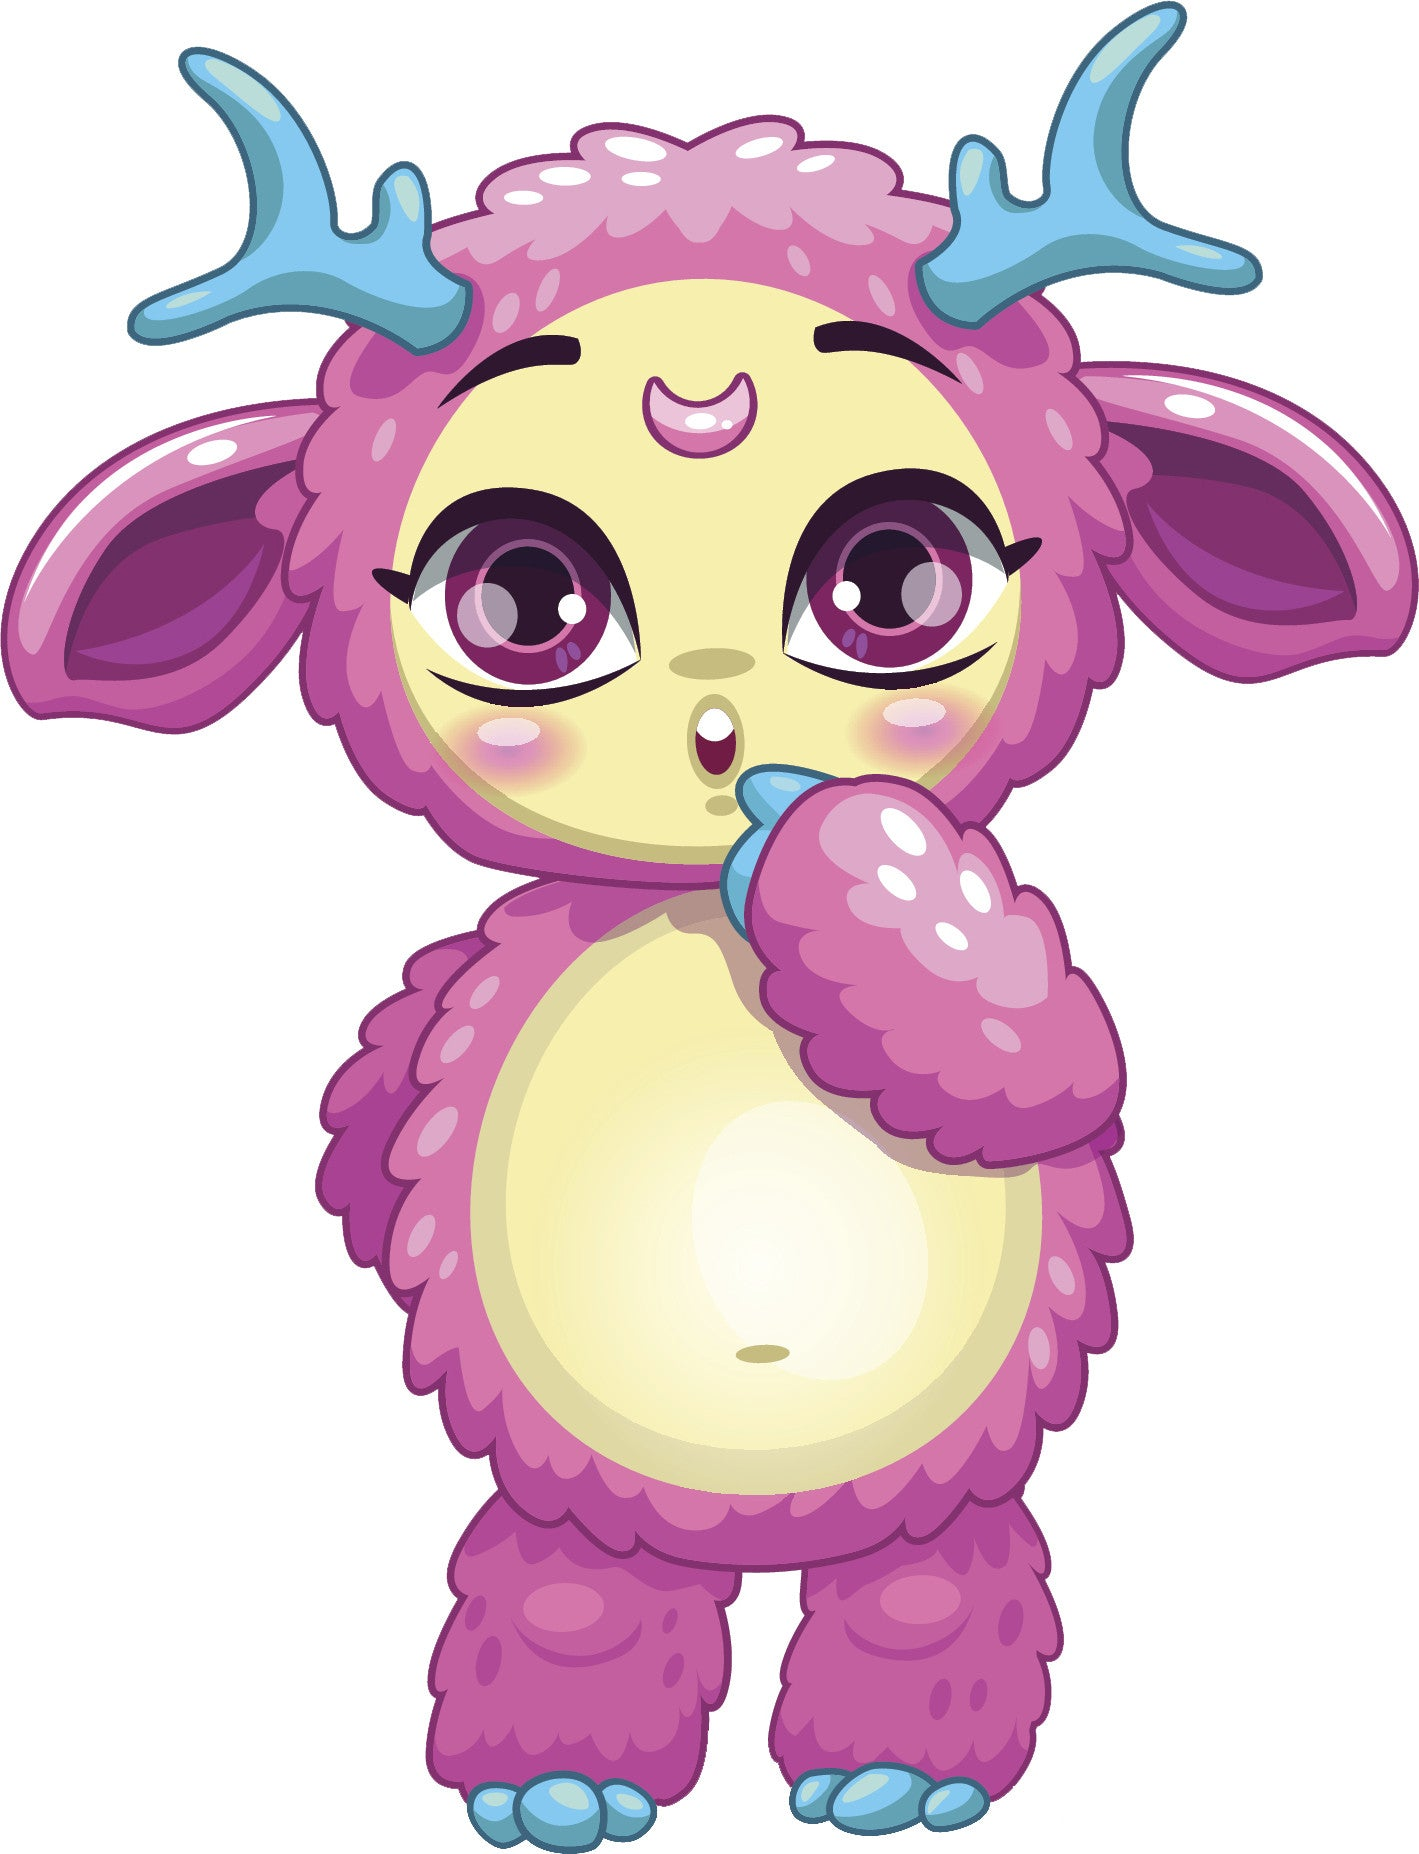 Adorable Kawaii Alien Lamb Sheep Cartoon - Purple Vinyl Decal Sticker